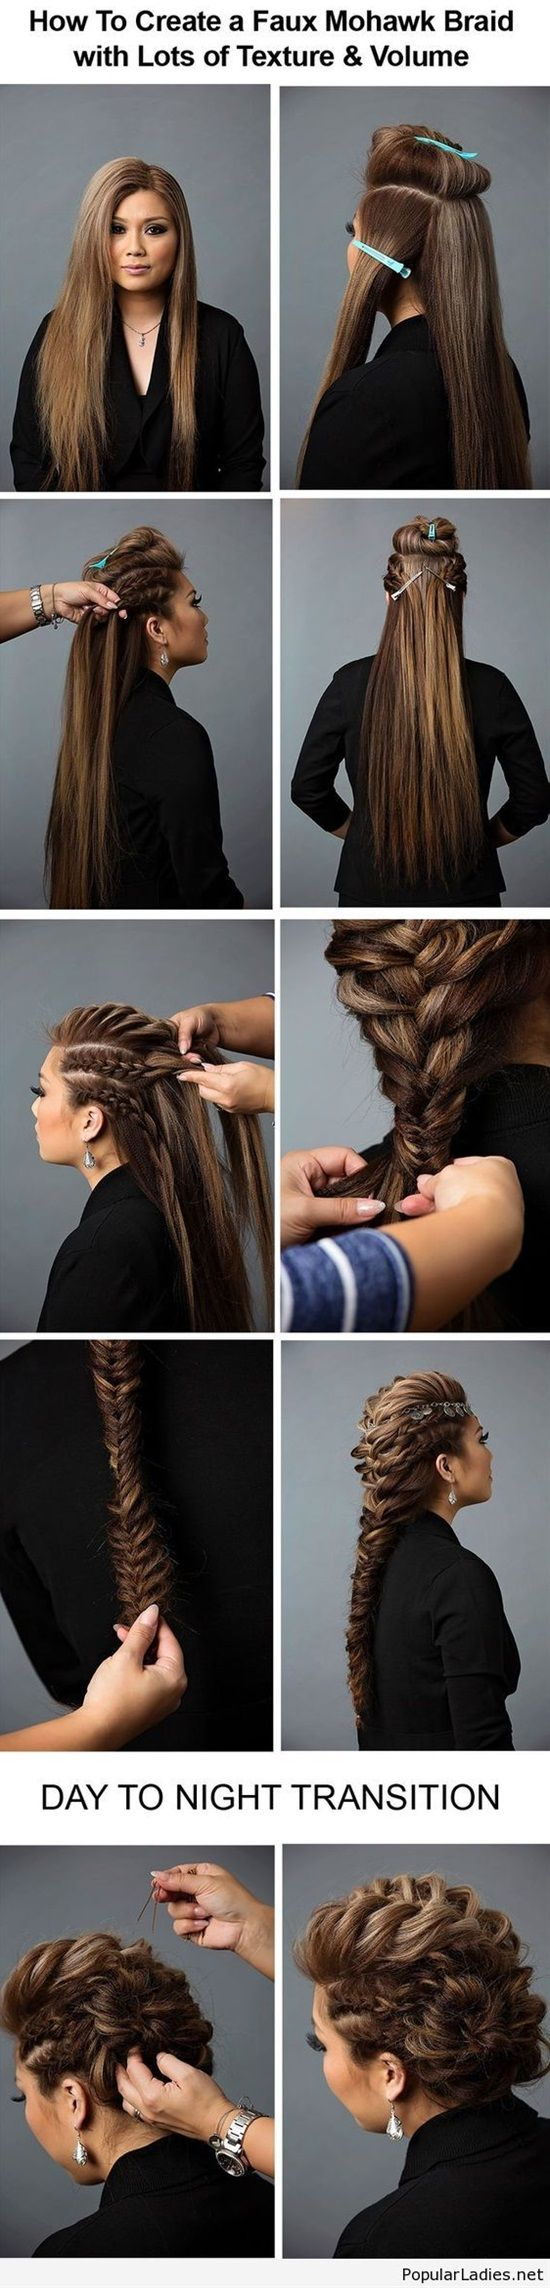 14 Bold & Unique Hairstyle Tutorials You Can Do At Home | Mix style ...